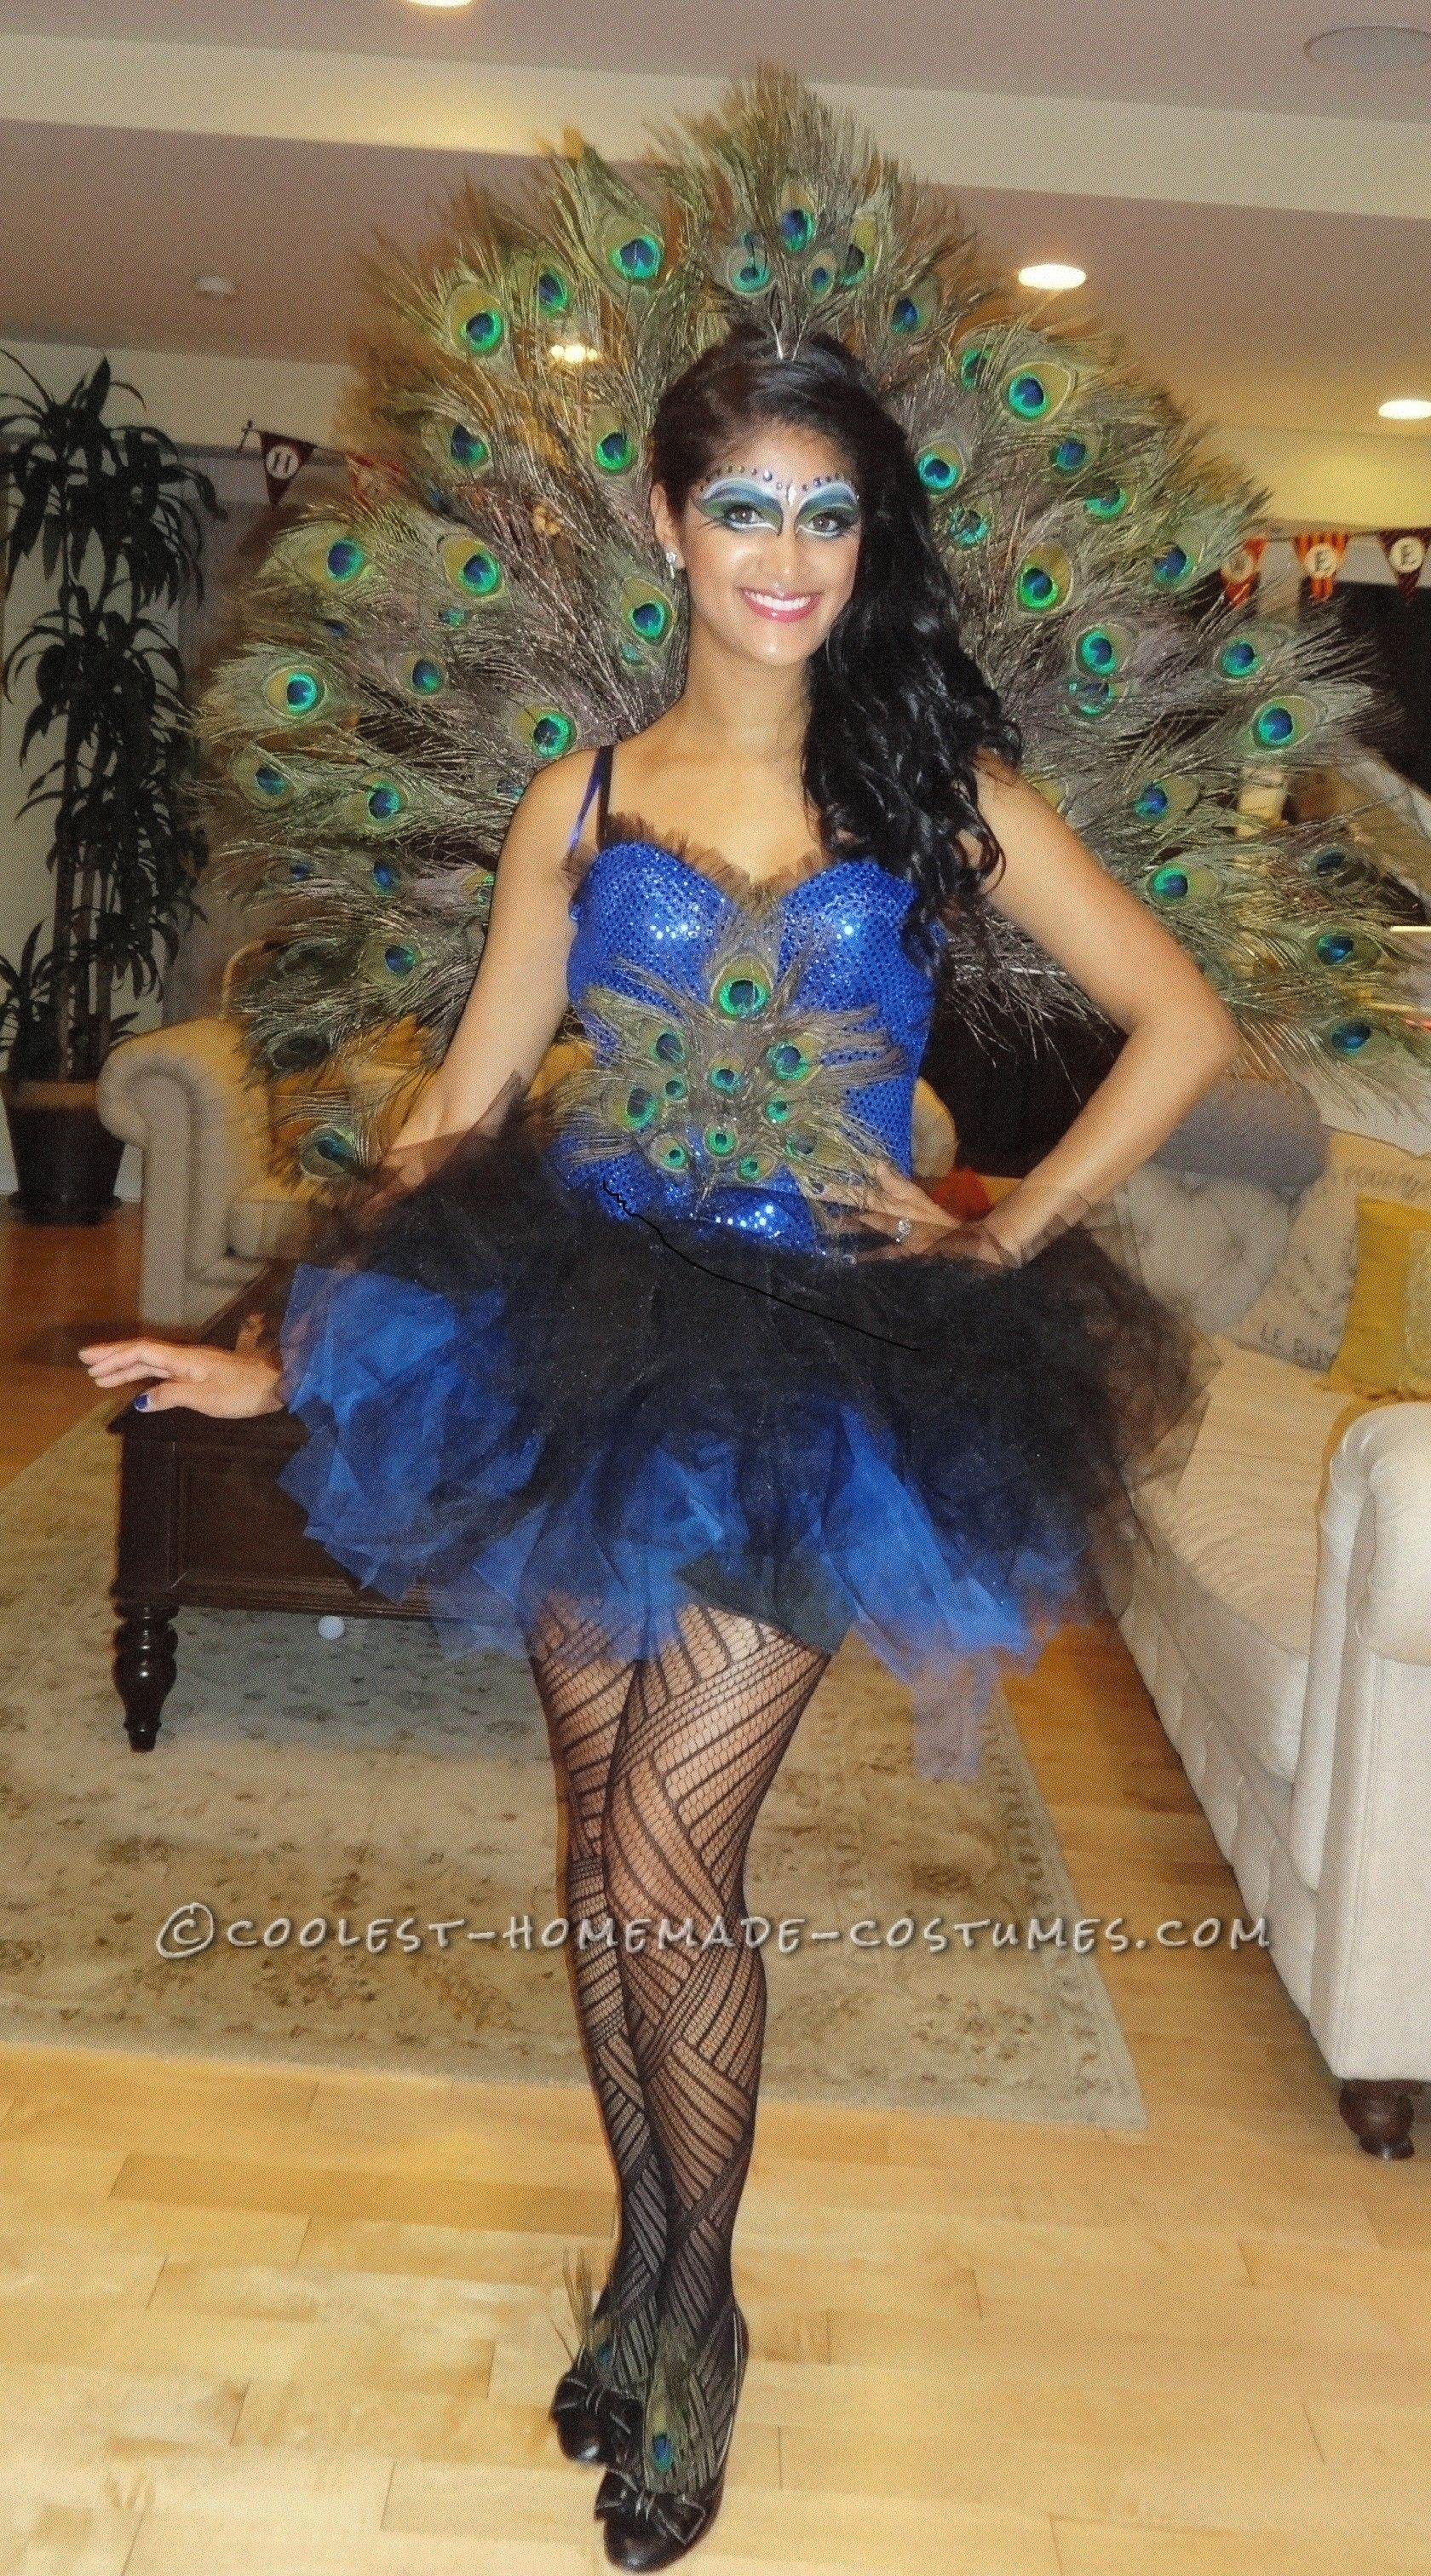 069650ae8 Beautiful DIY Woman's Peacock Costume... Coolest Halloween Costume Contest